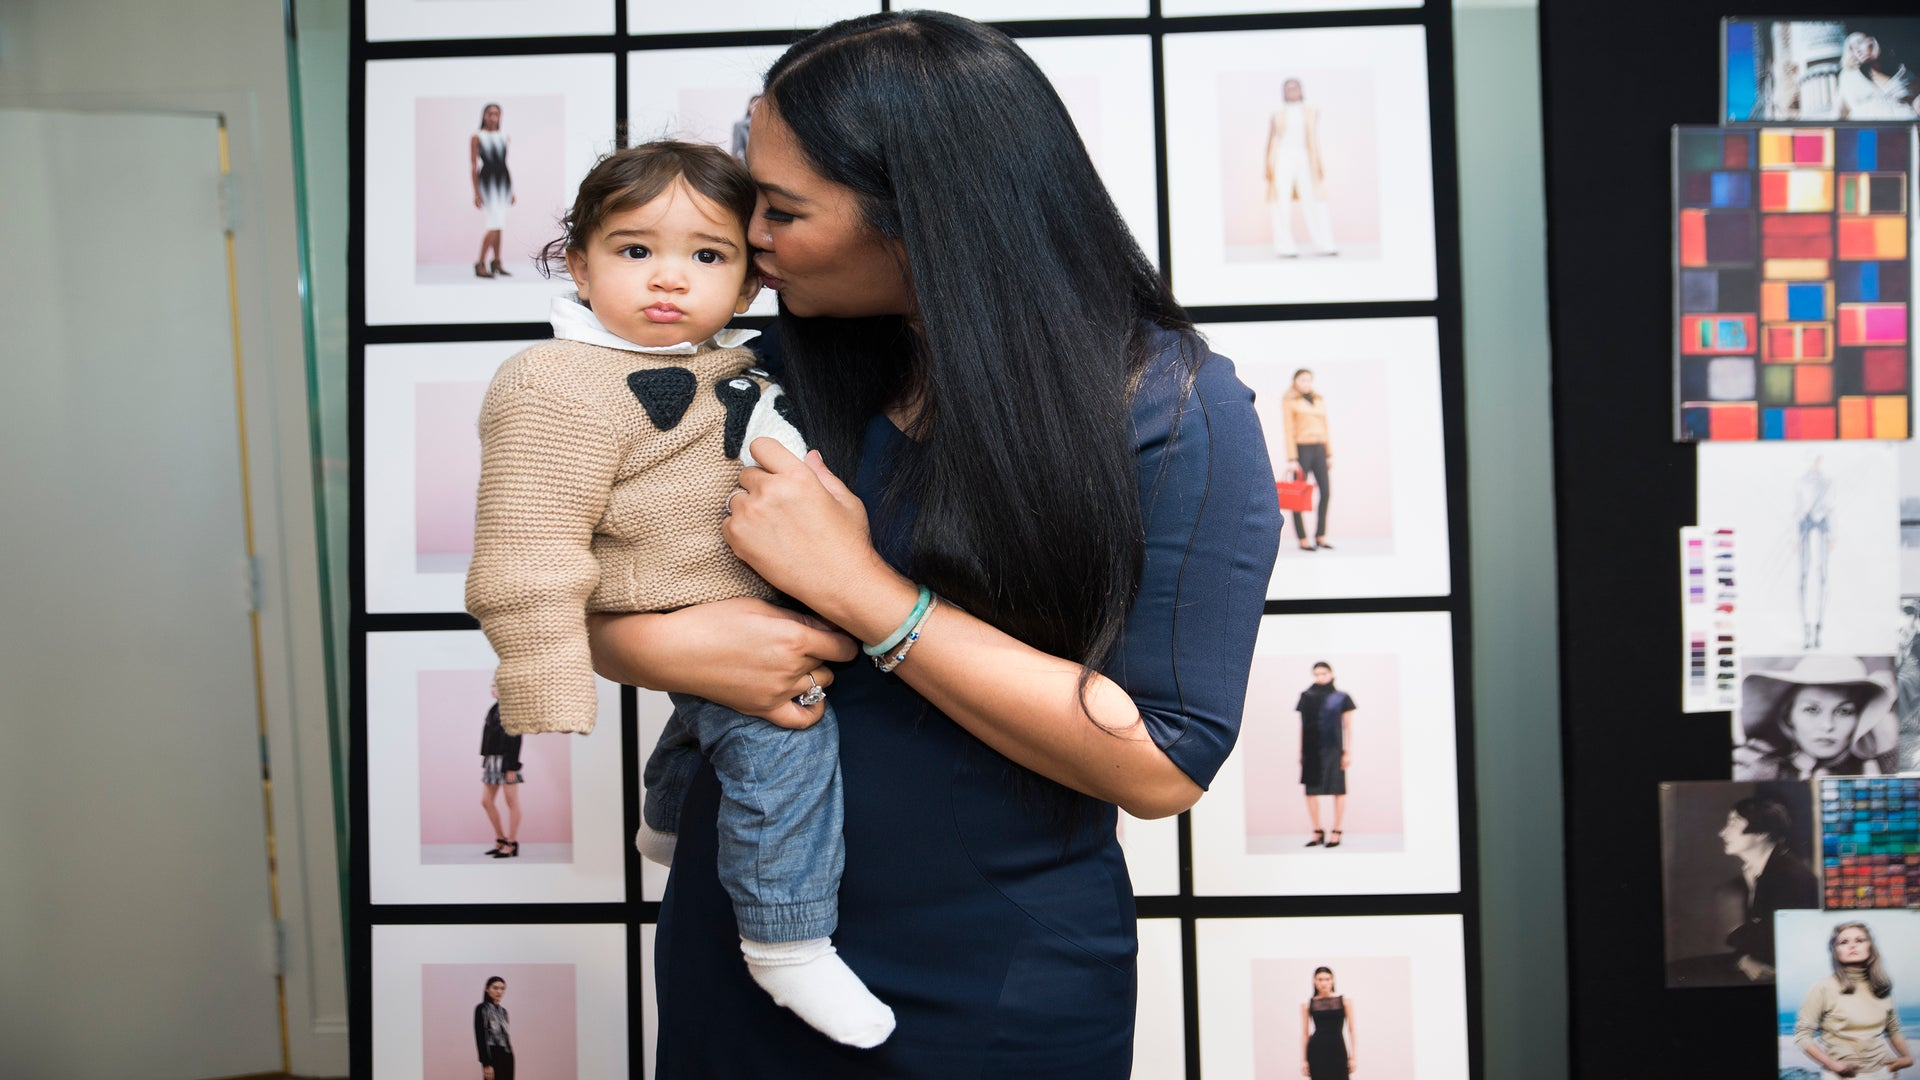 Photo Fab! Kimora Lee's Son Wolfe Lee Is Too Adorable For Words